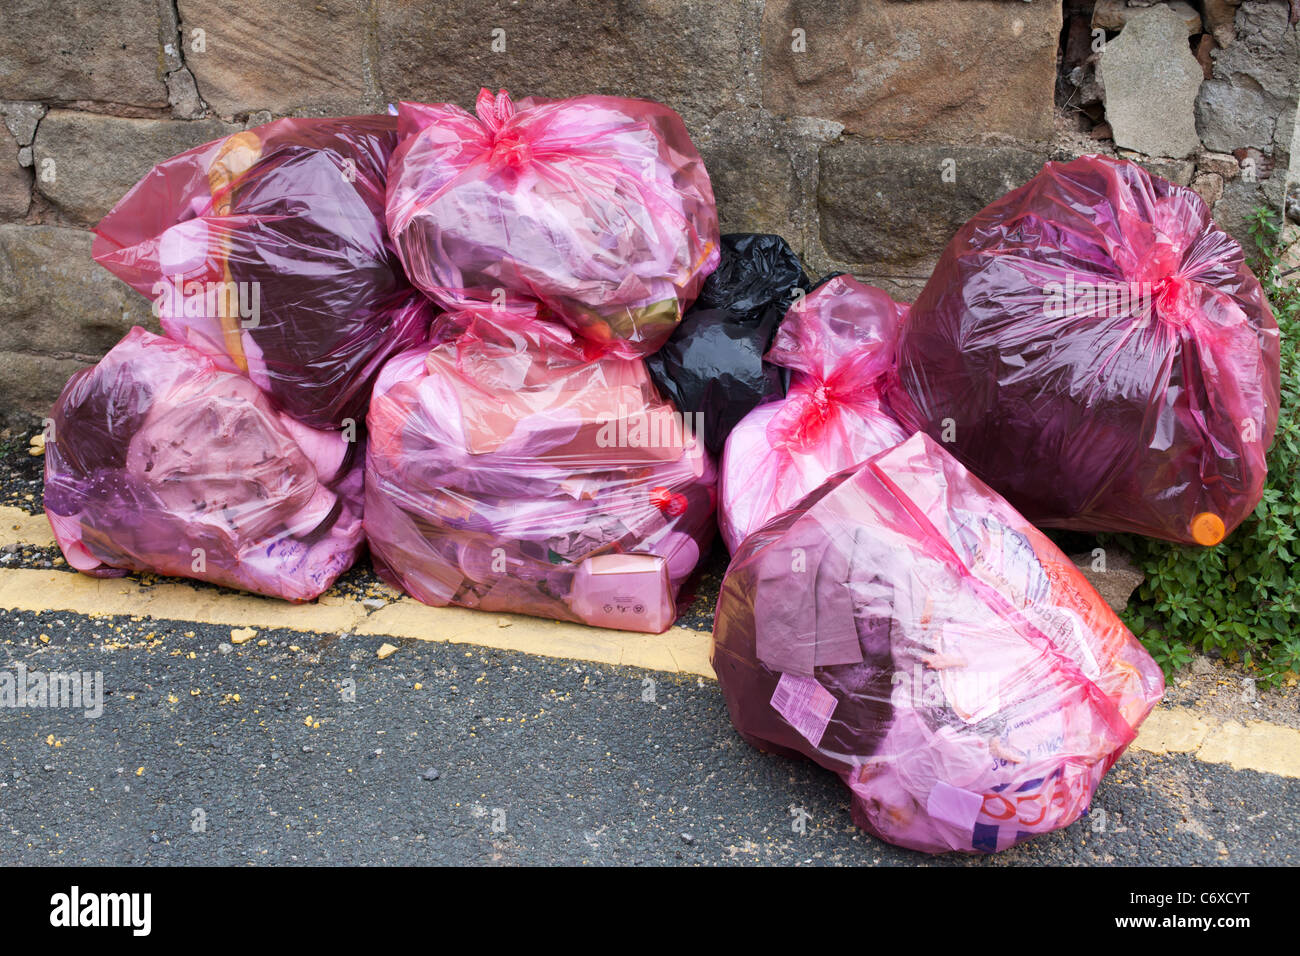 Red Rubbish Bags - Stock Image